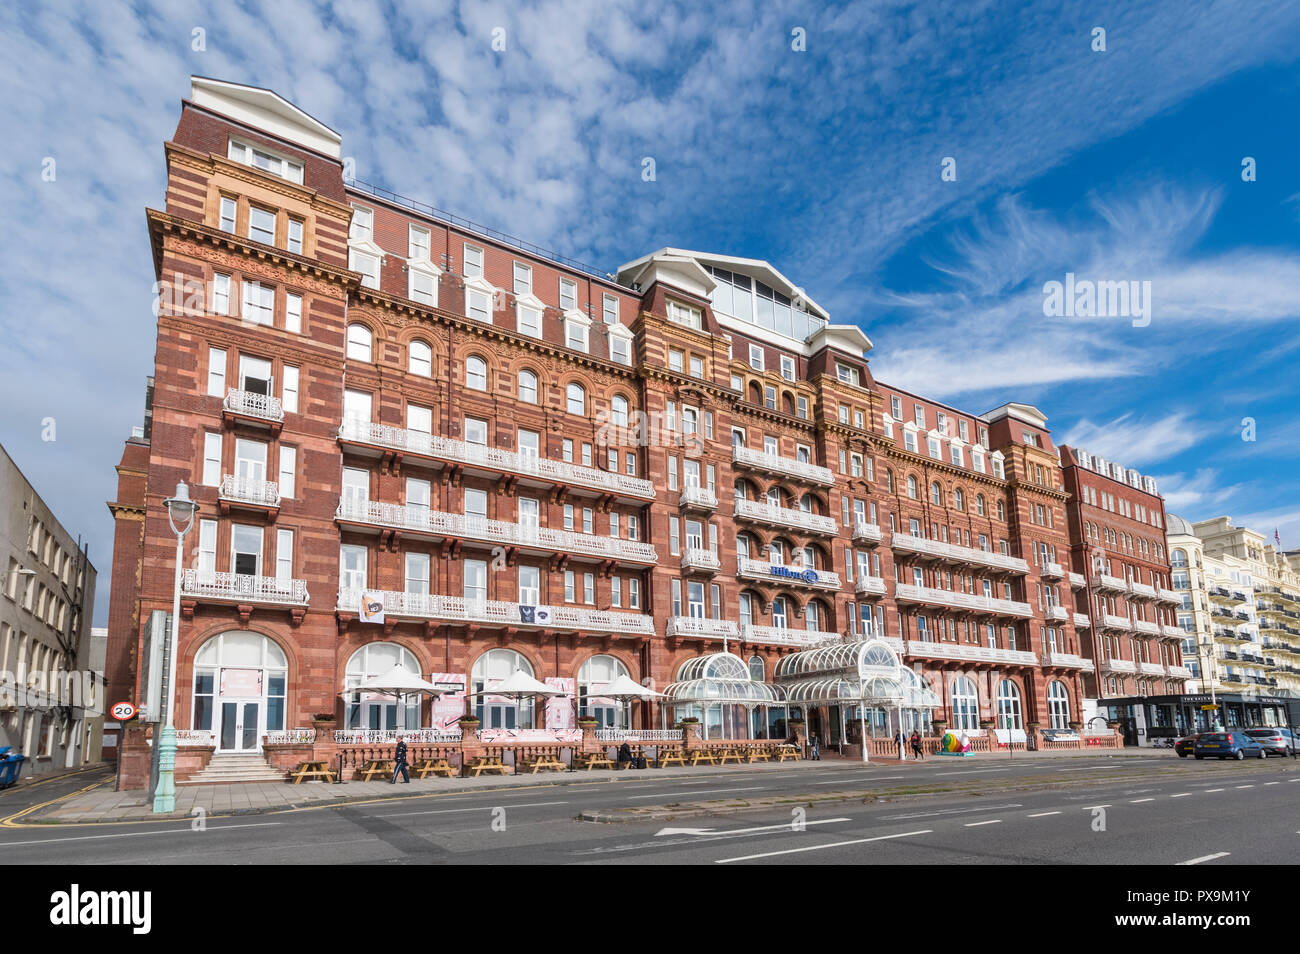 Hilton Brighton Metropole Hotel, a very large seaside hotel on Kings Road in Brighton, East Sussex, England, UK. - Stock Image